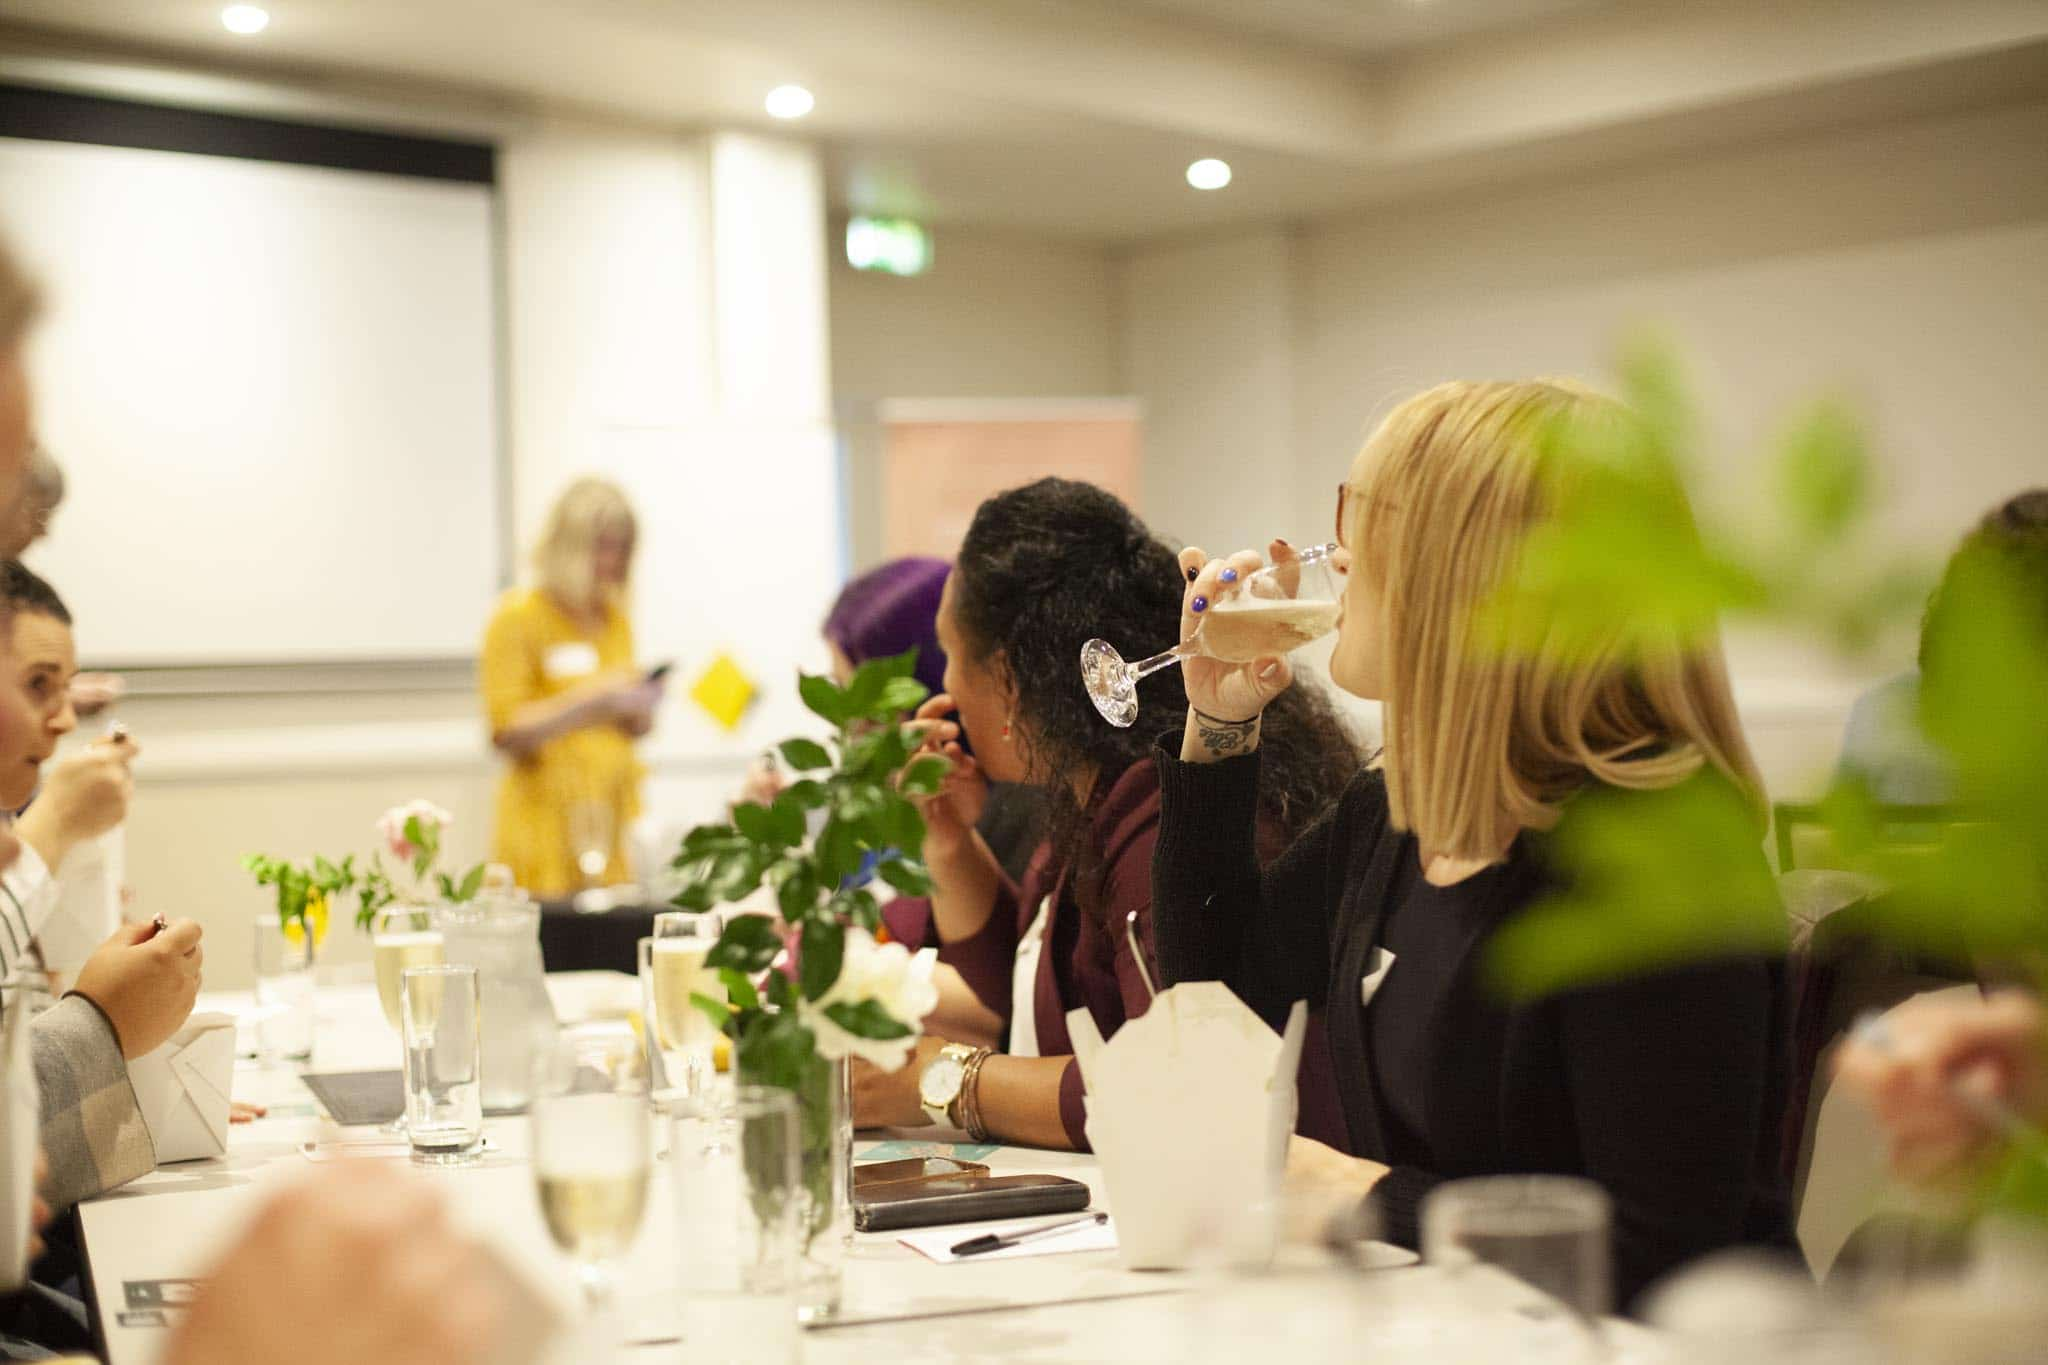 Speed Networking & New Program Launch - https://www.griffithwomeninbusiness.org/wp-content/uploads/2021/06/GWIB-Speed-Networking-2021-IMG_0897-2048px.jpg